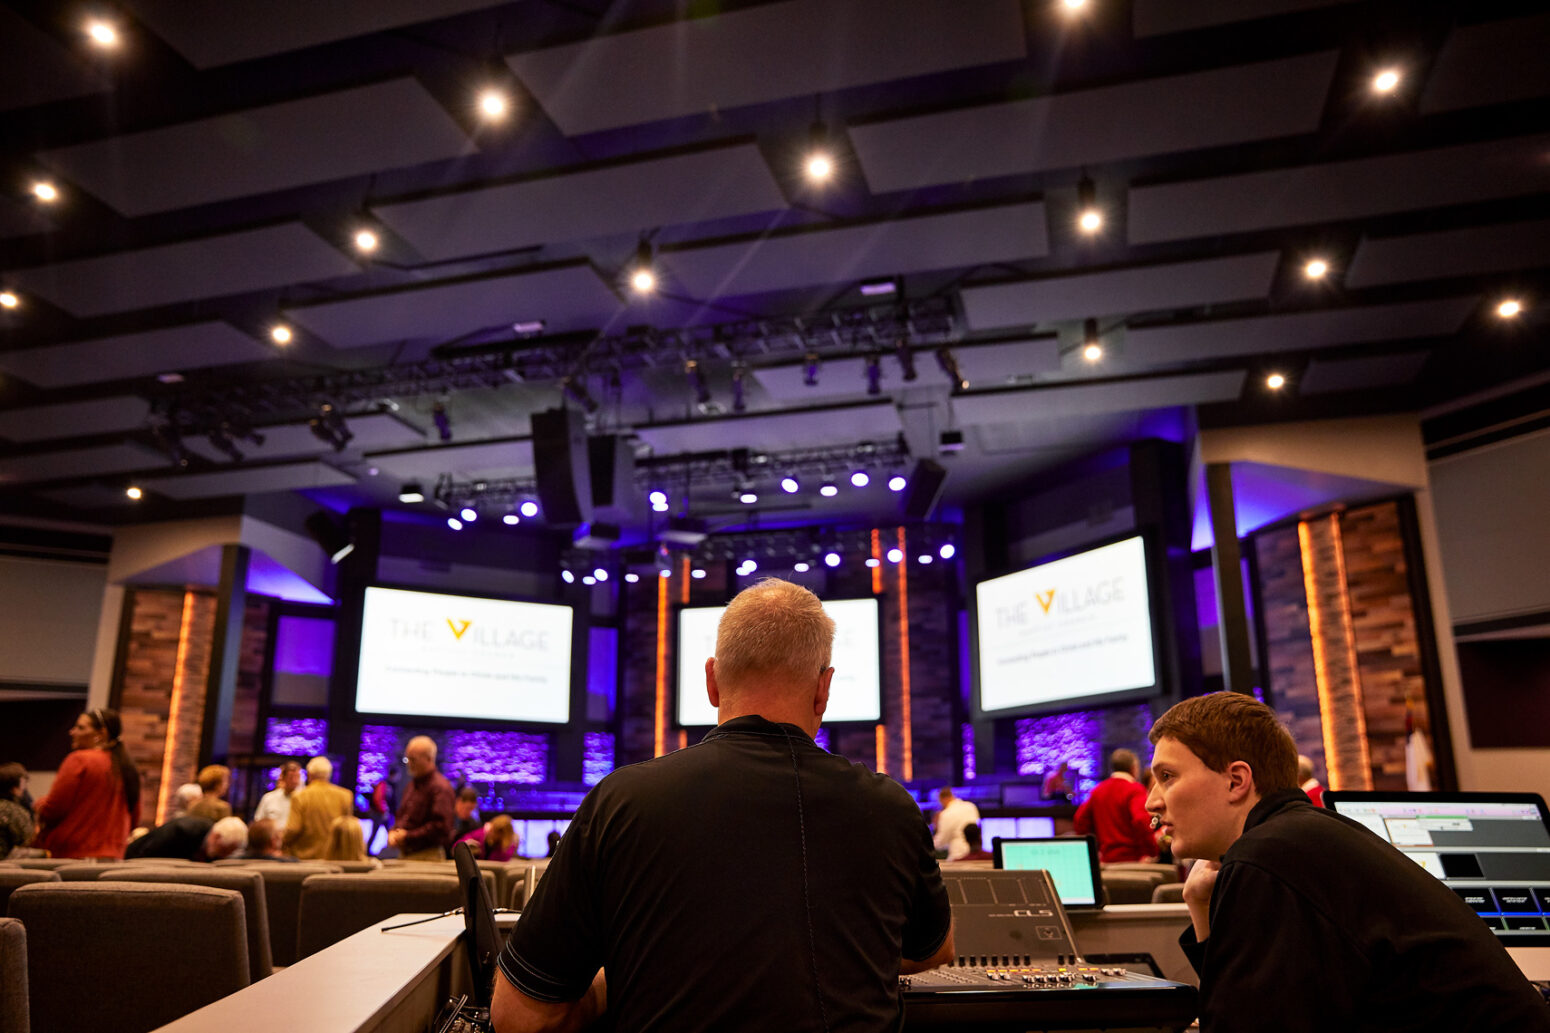 Paragon 360's work sets the benchmark for church audio visual companies, as you can tell from this project for Village Baptist.